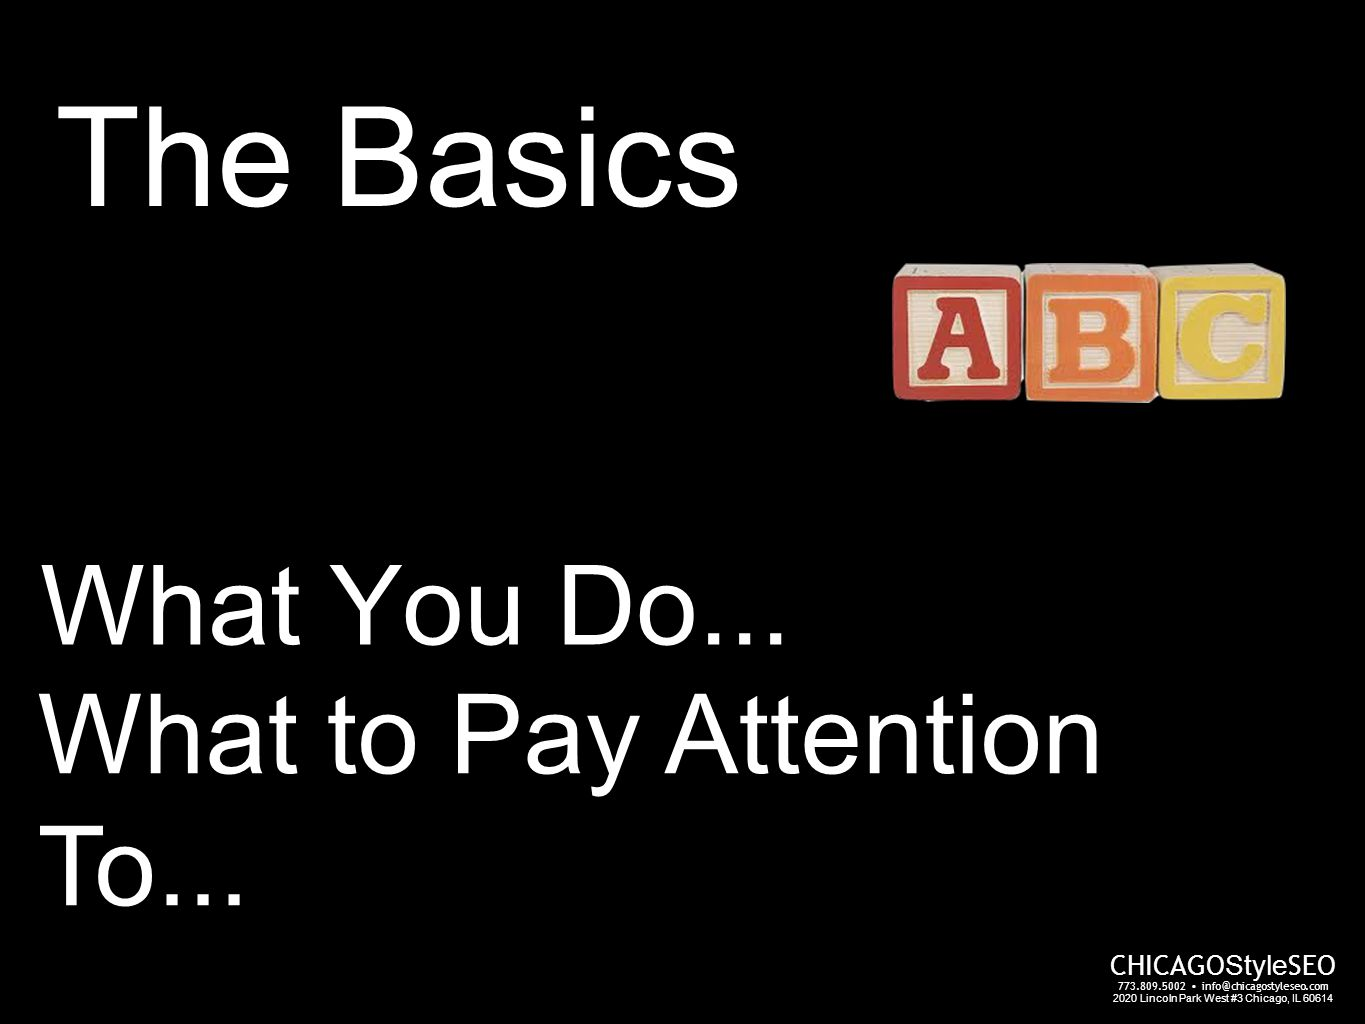 What You Do... What to Pay Attention To...